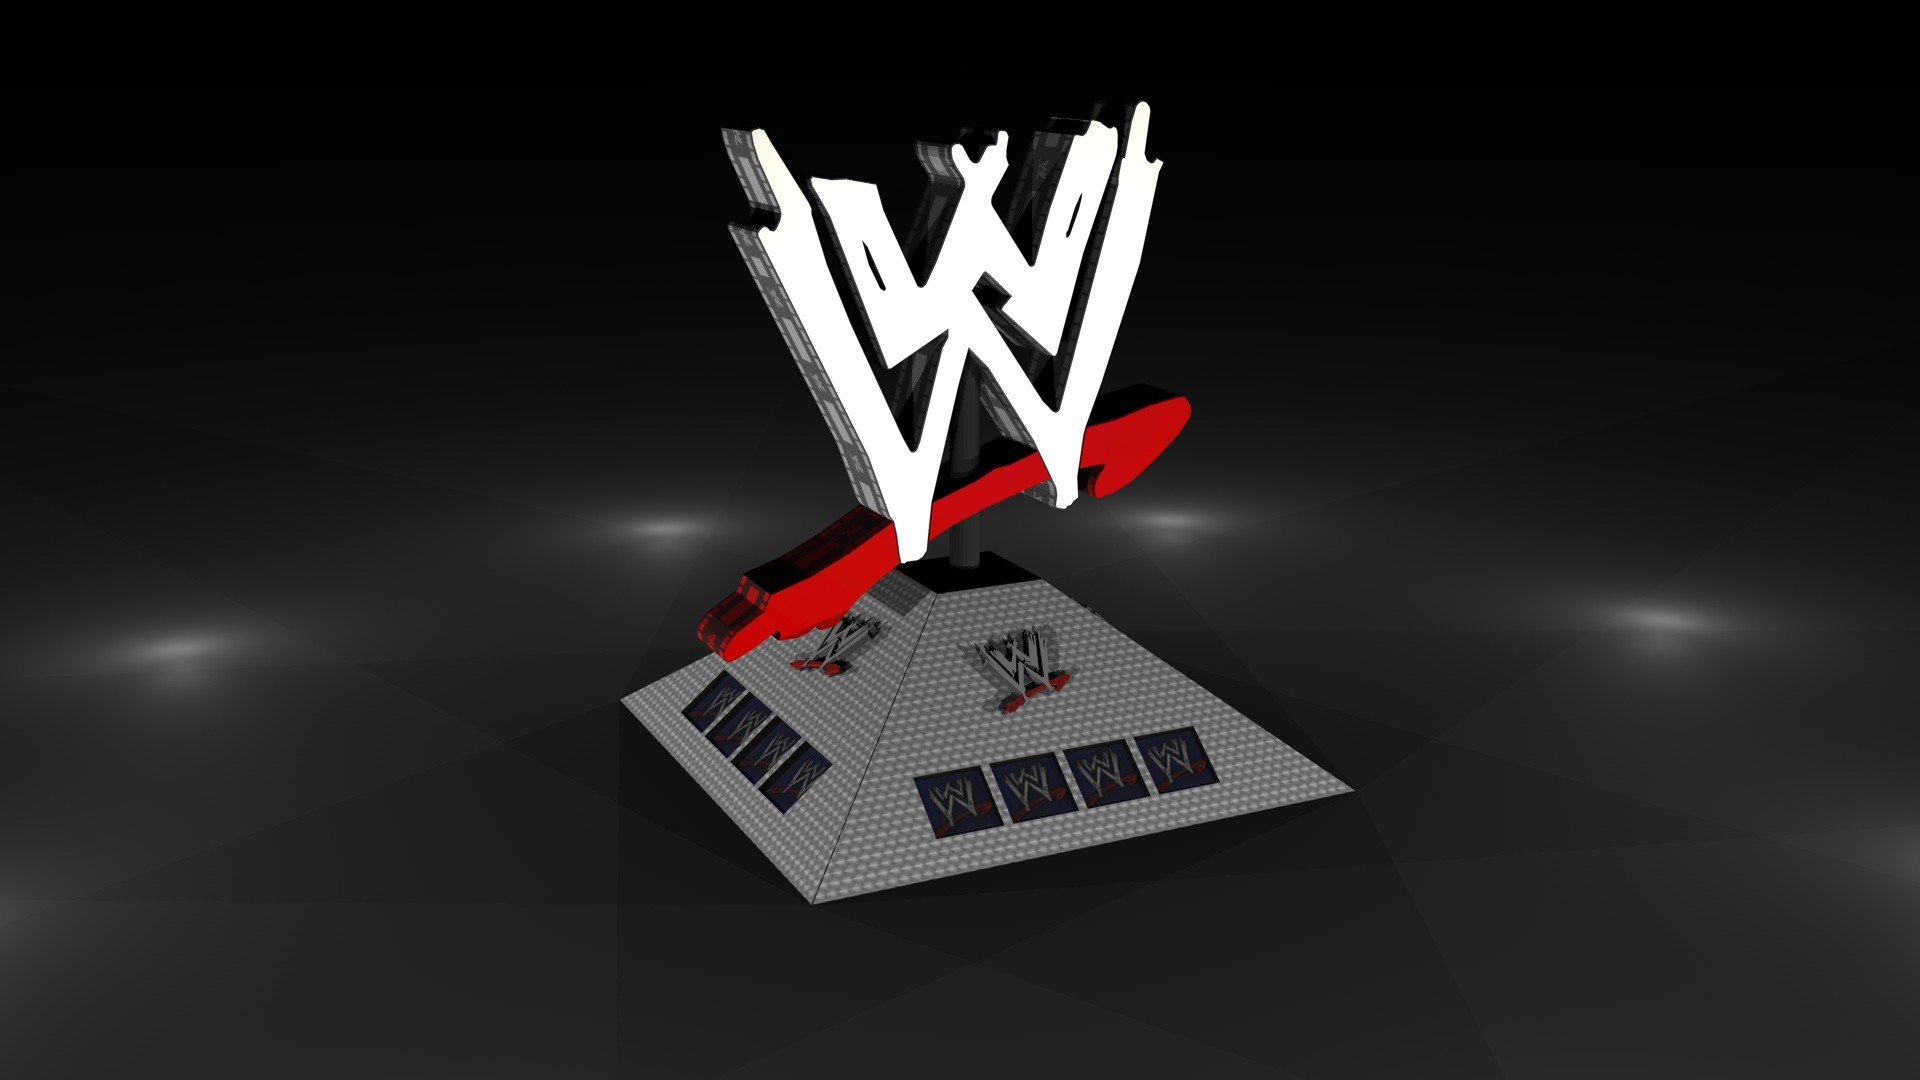 1920x1080 Wwe Logo Wallpaper HD download.